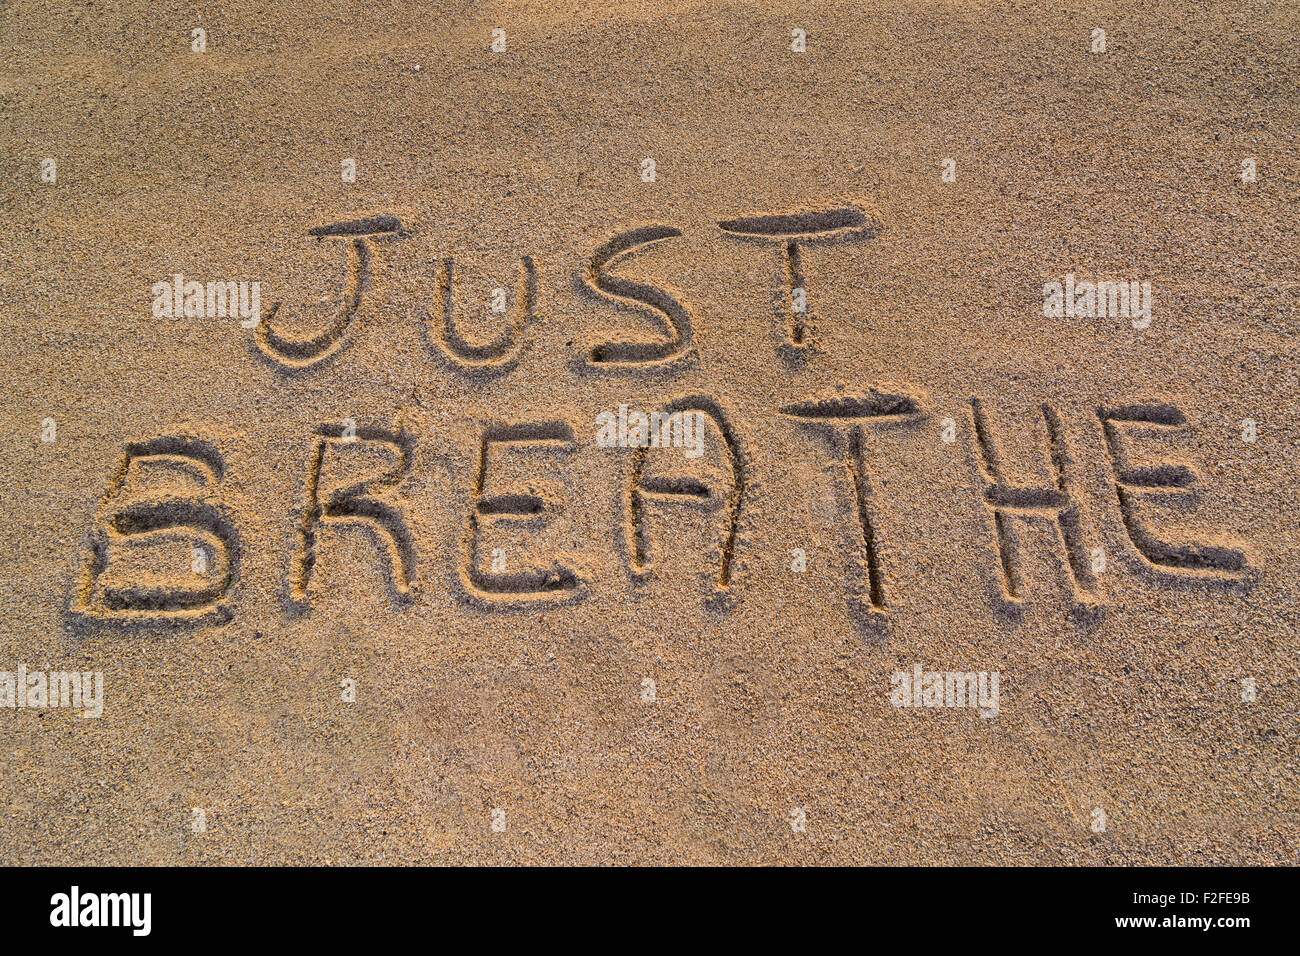 In the picture the words on the sand 'Just breathe'. - Stock Image